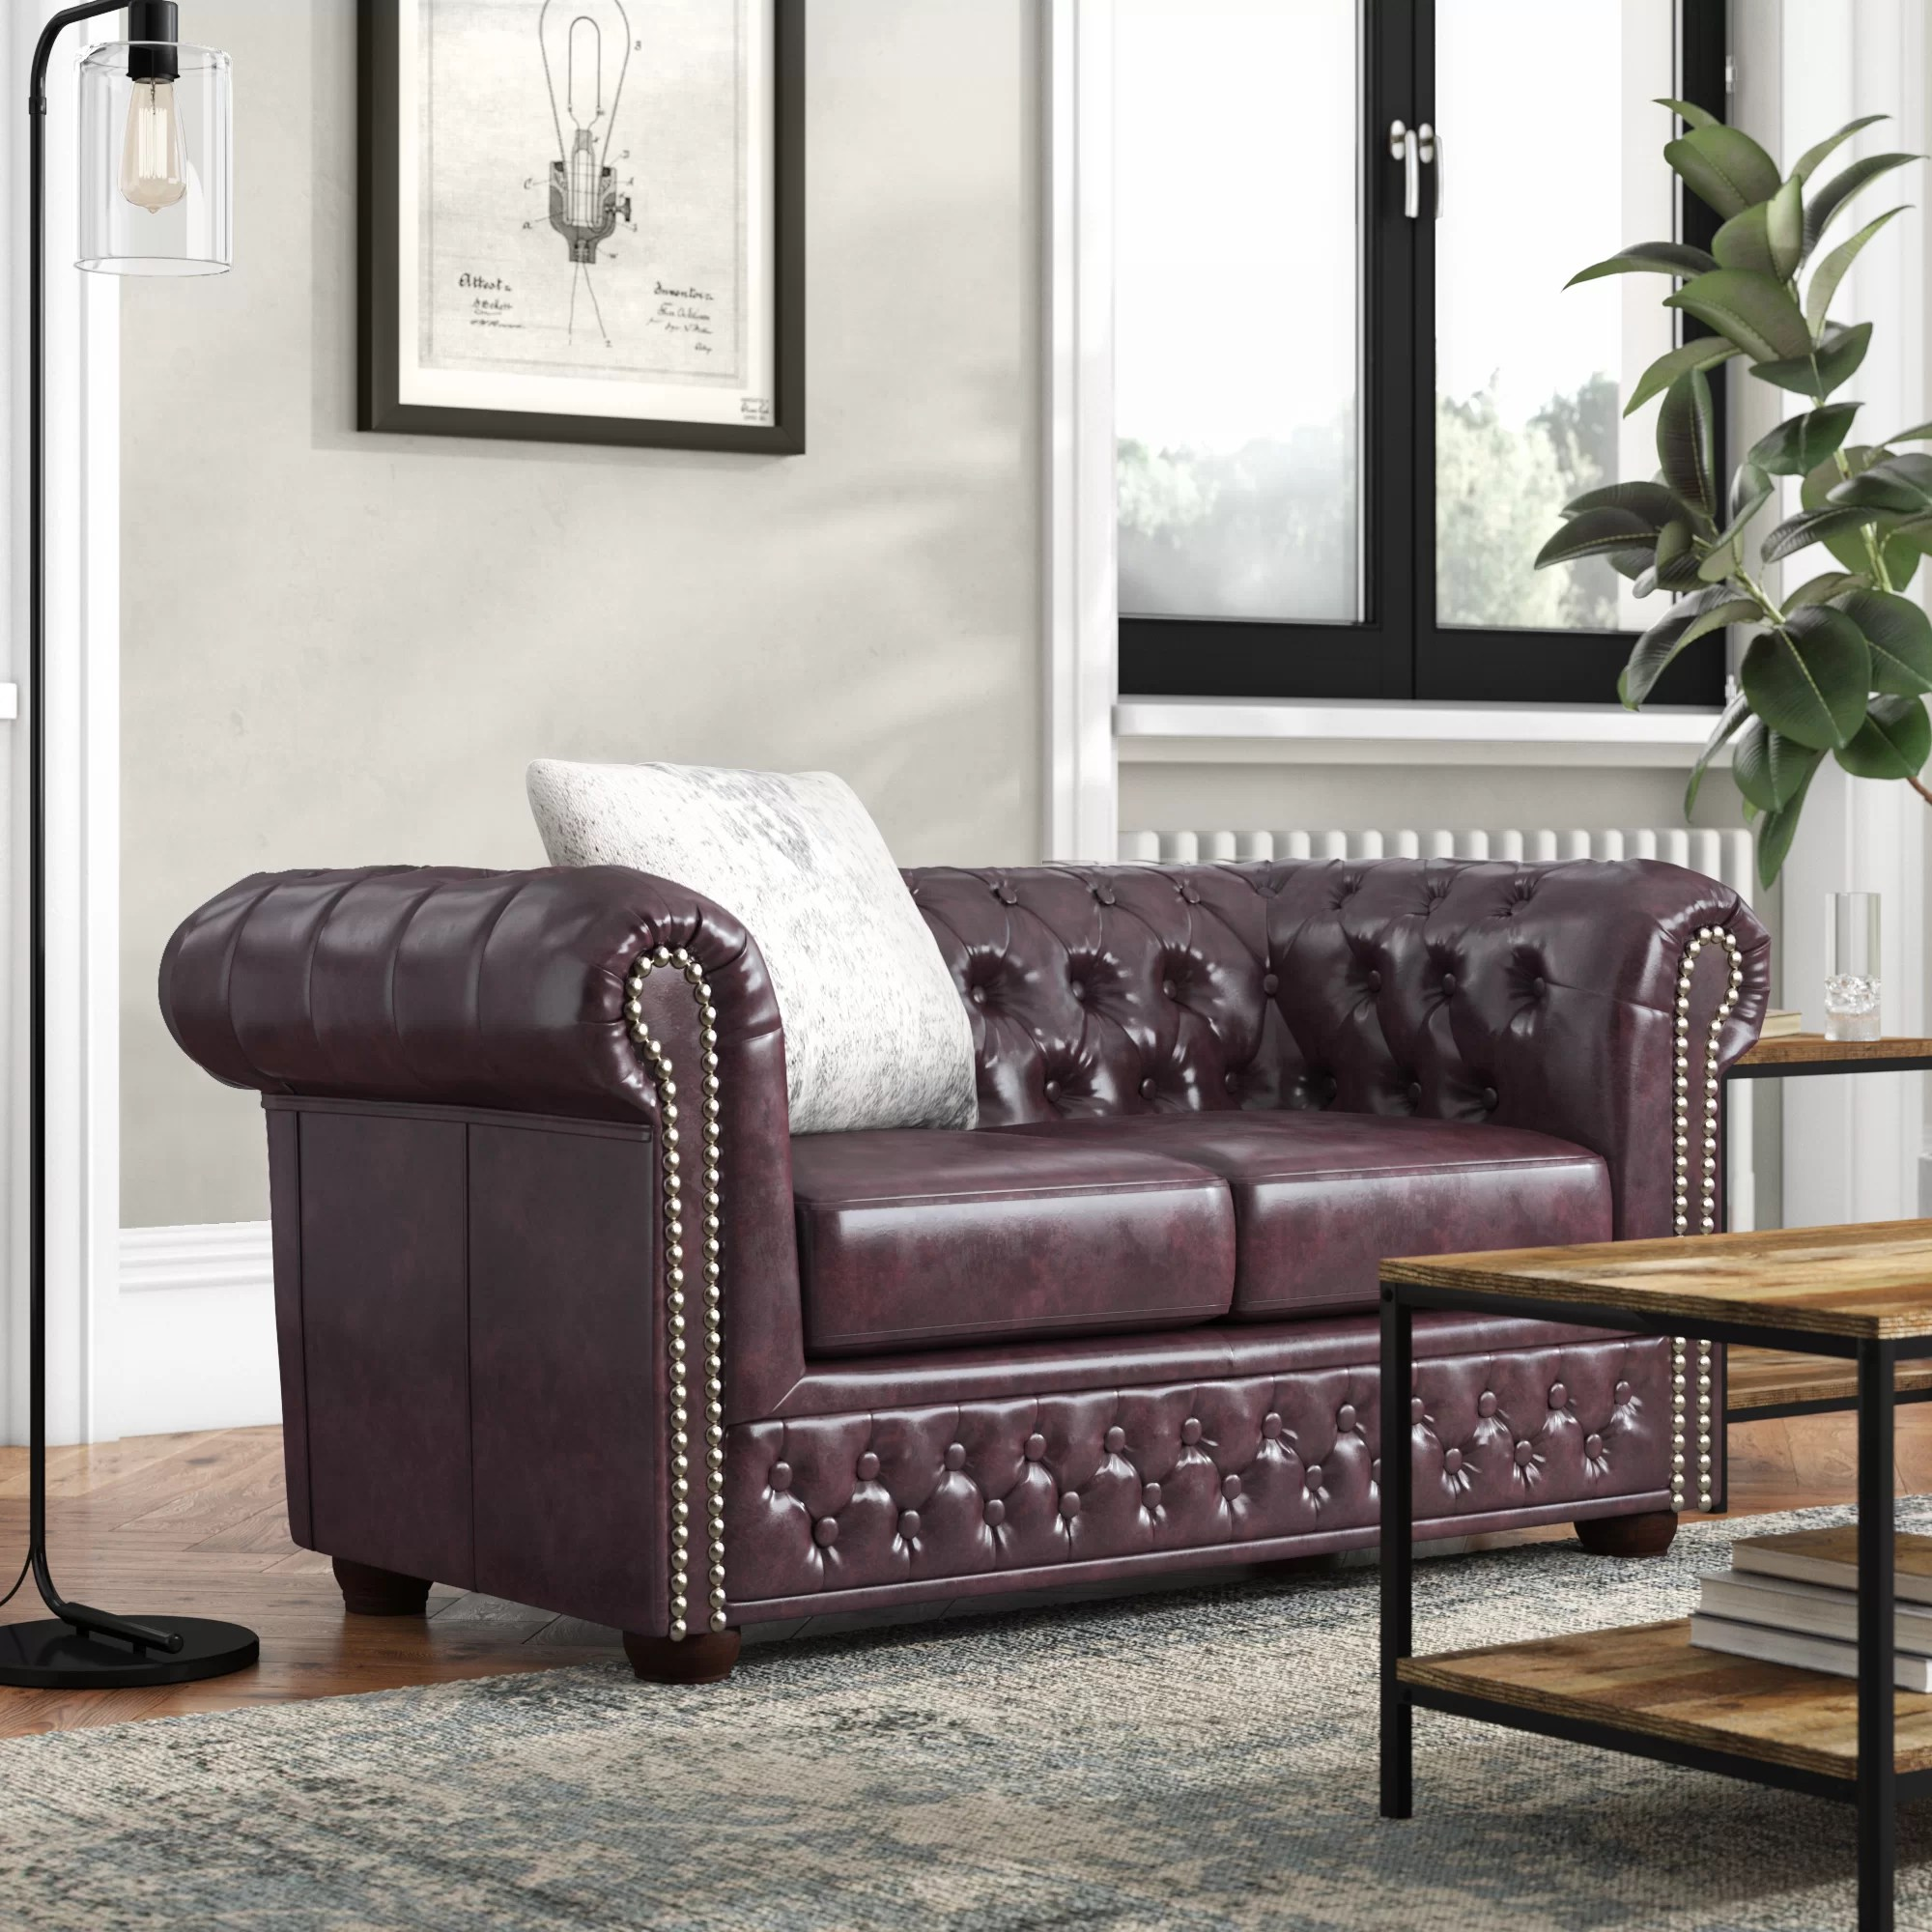 Chesterfield Sofa Online Uk Abtao 2 Seater Chesterfield Sofa